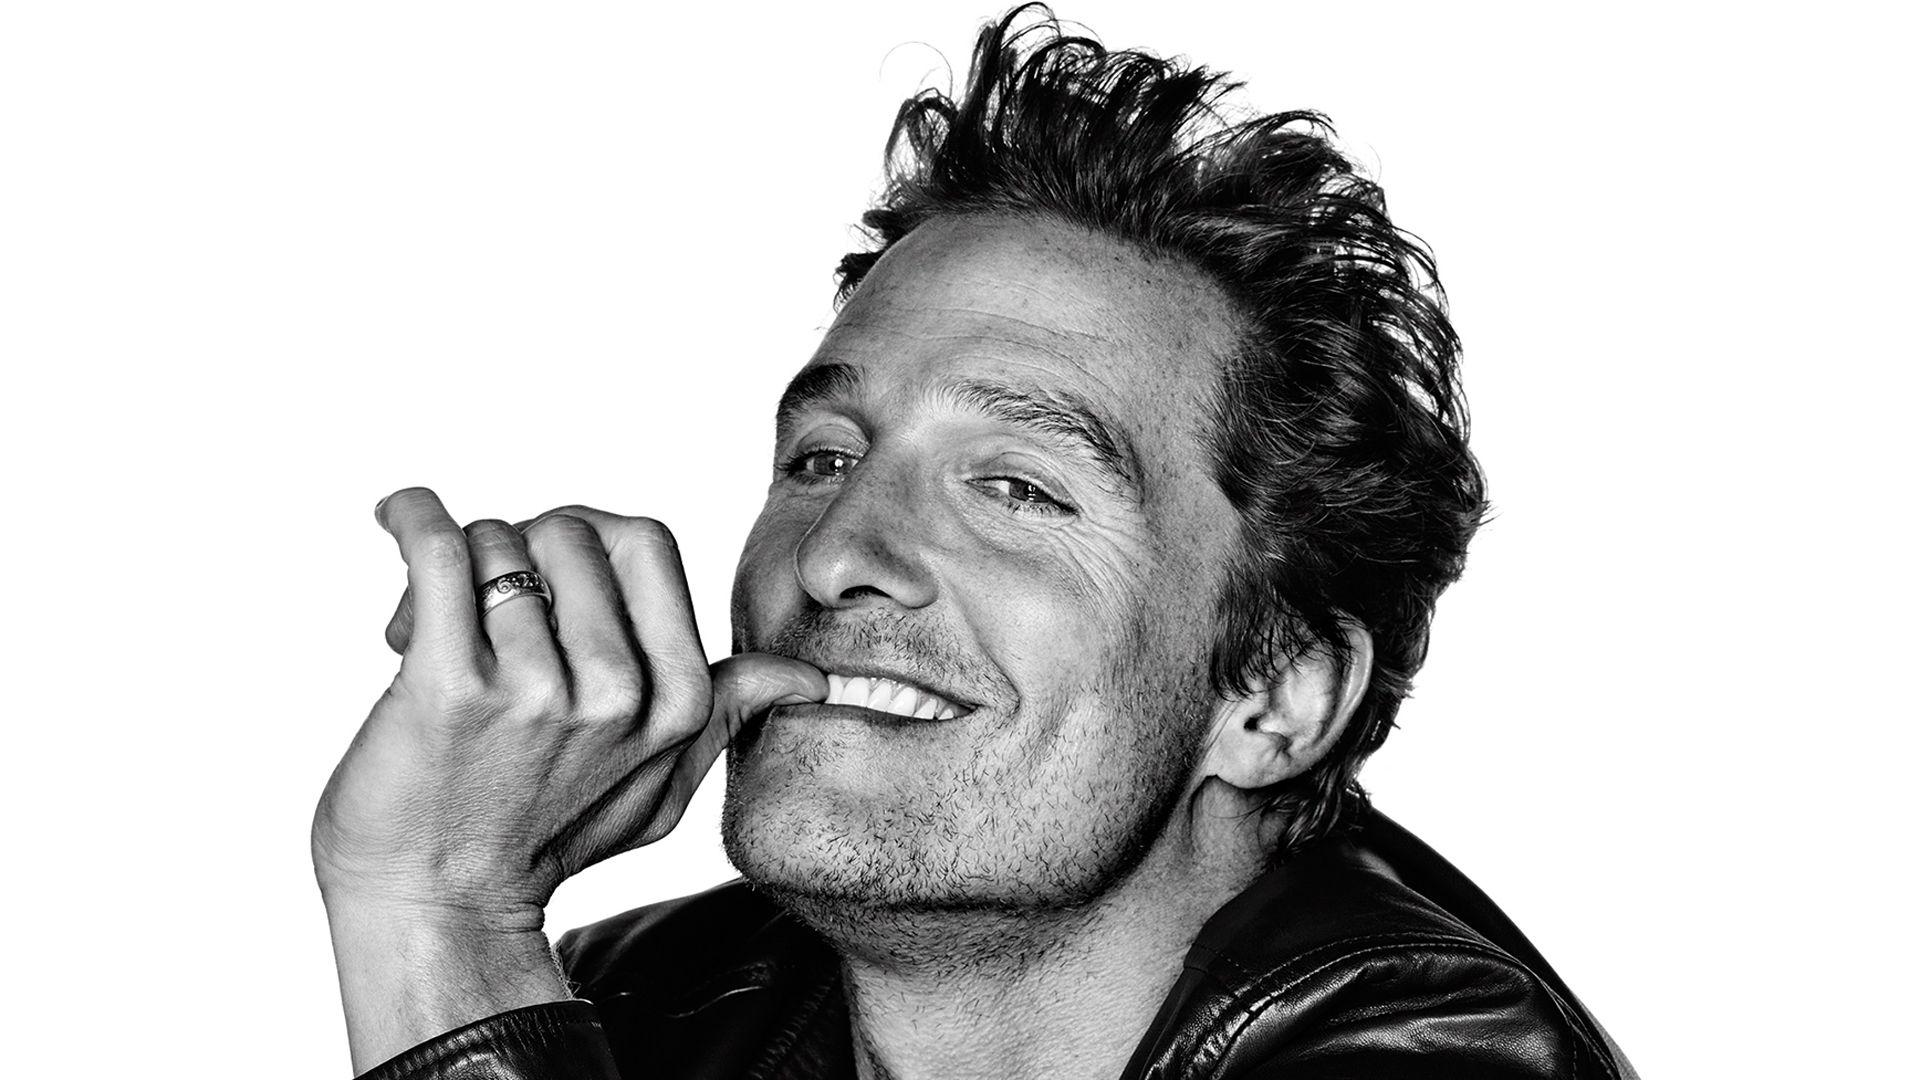 HD Matthew McConaughey Wallpapers – HdCoolWallpapers.Com